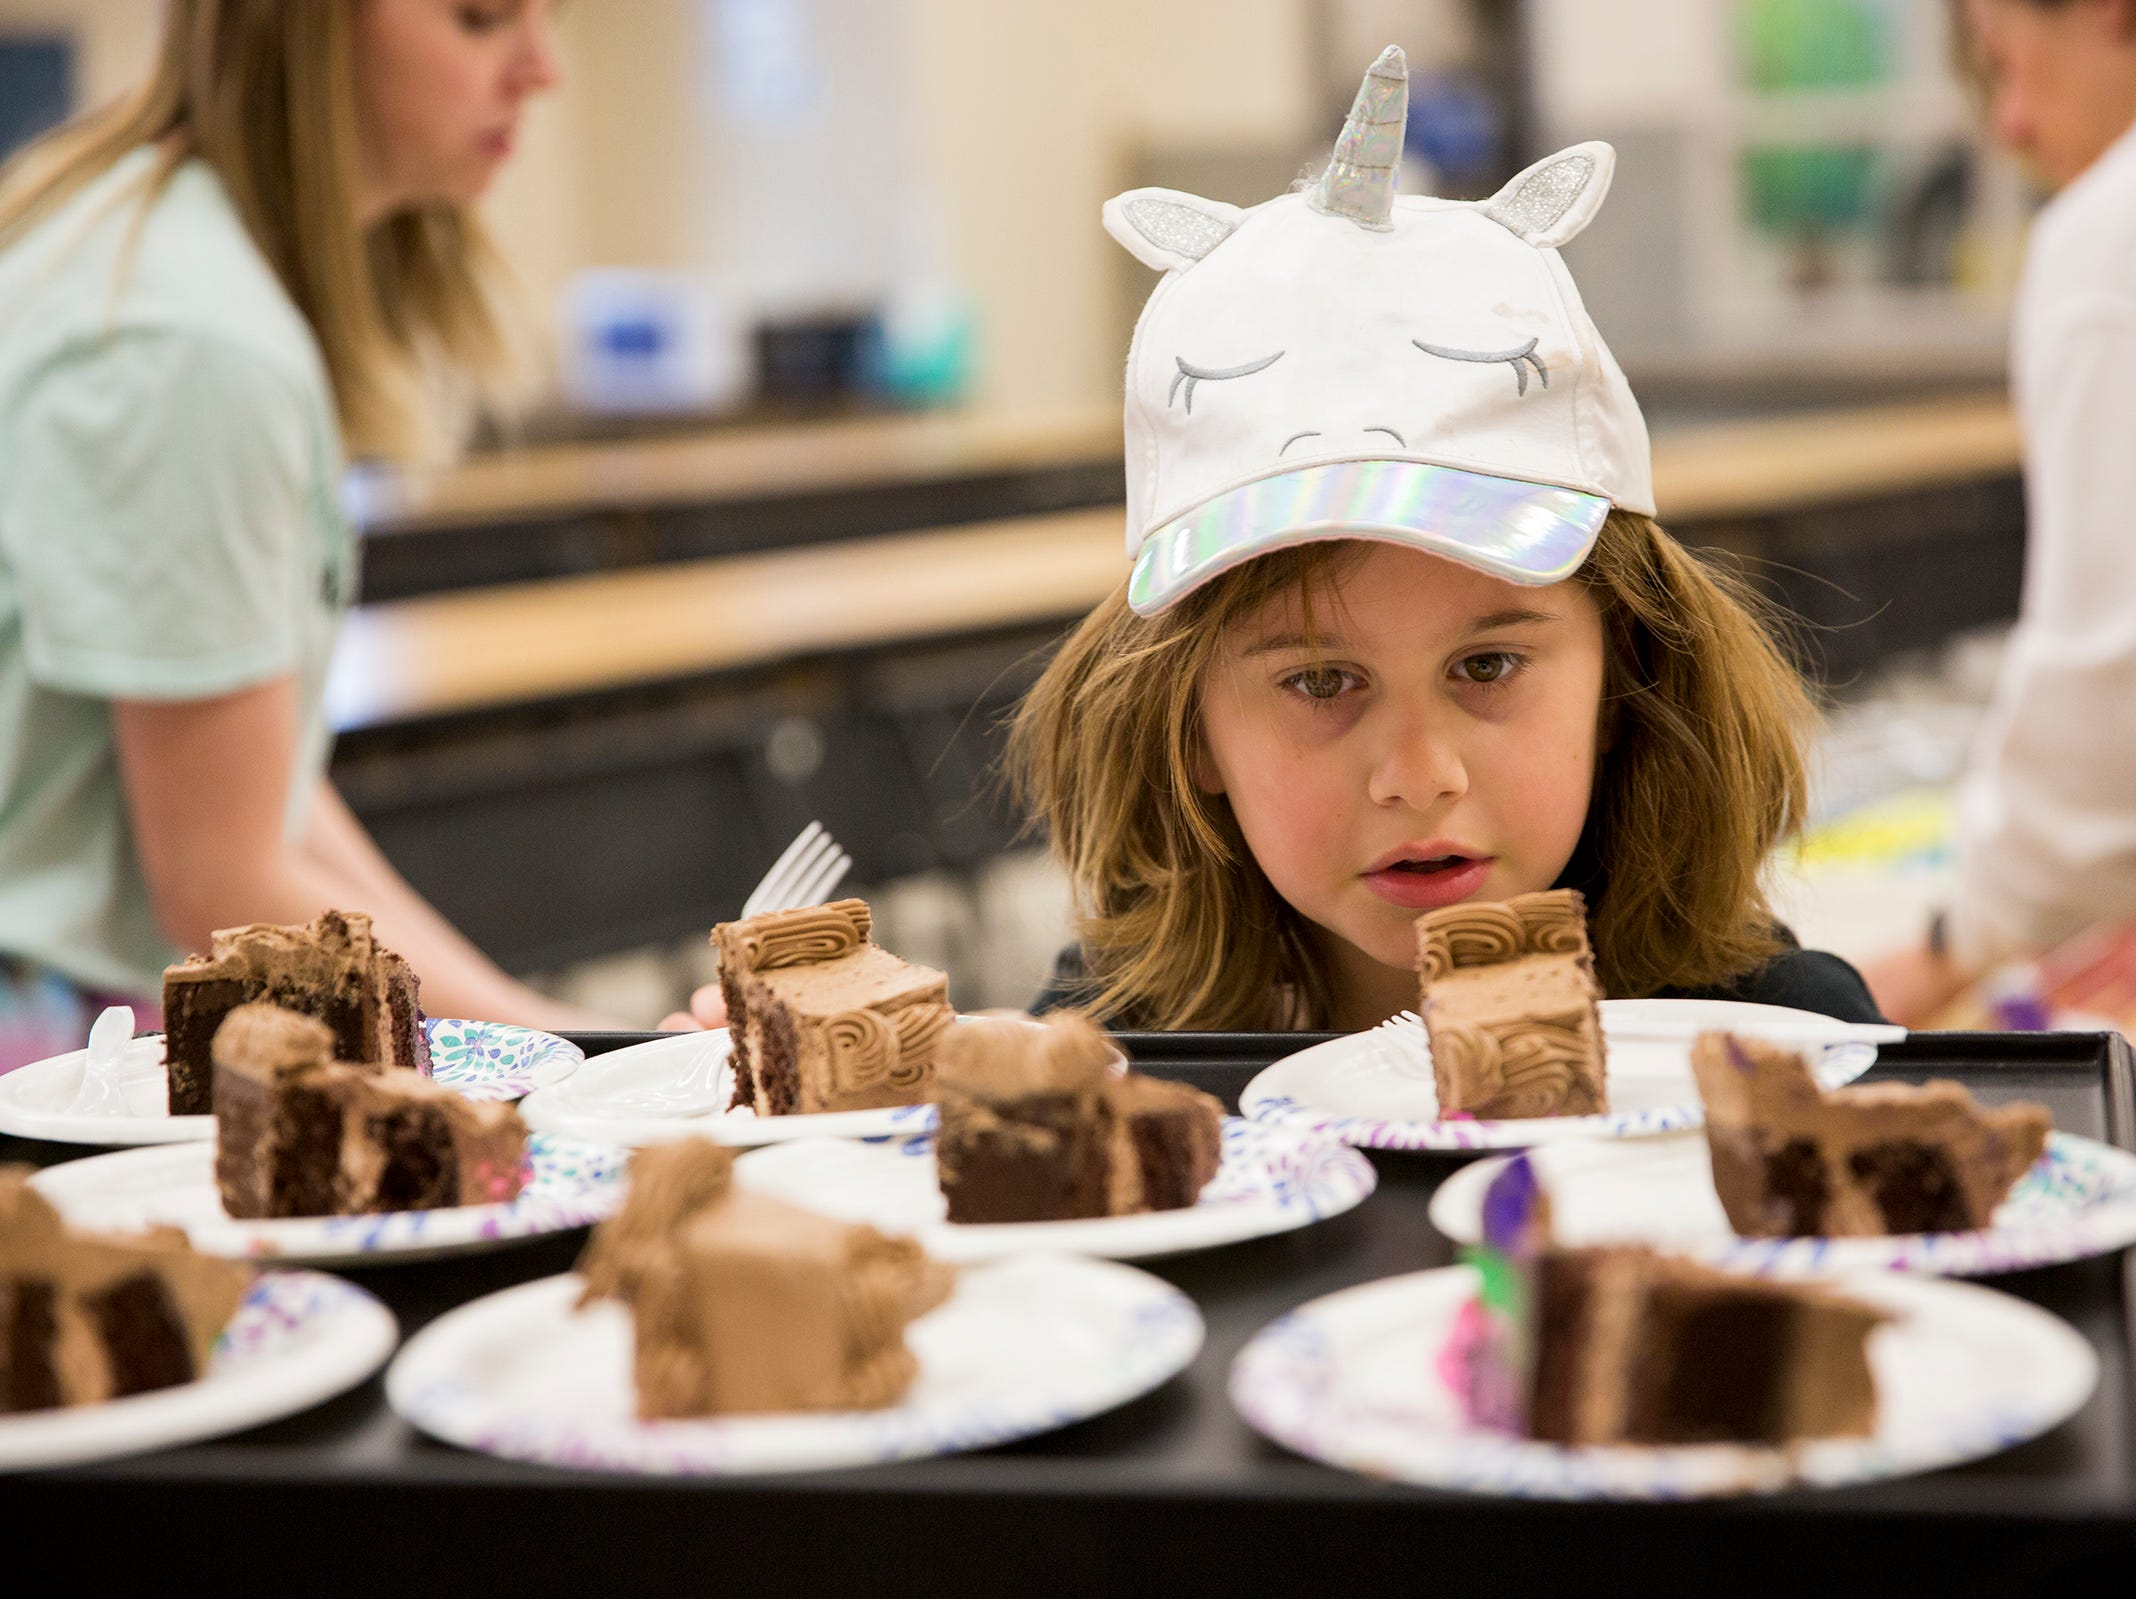 Haley Pollman, a third grader, helps place forks on plates of cake on rare disease day at Lee Elementary School in Salem on Thursday, Feb. 28, 2019. A fundraiser at Lee recently raised $1,700 for Batten disease which Haley has.